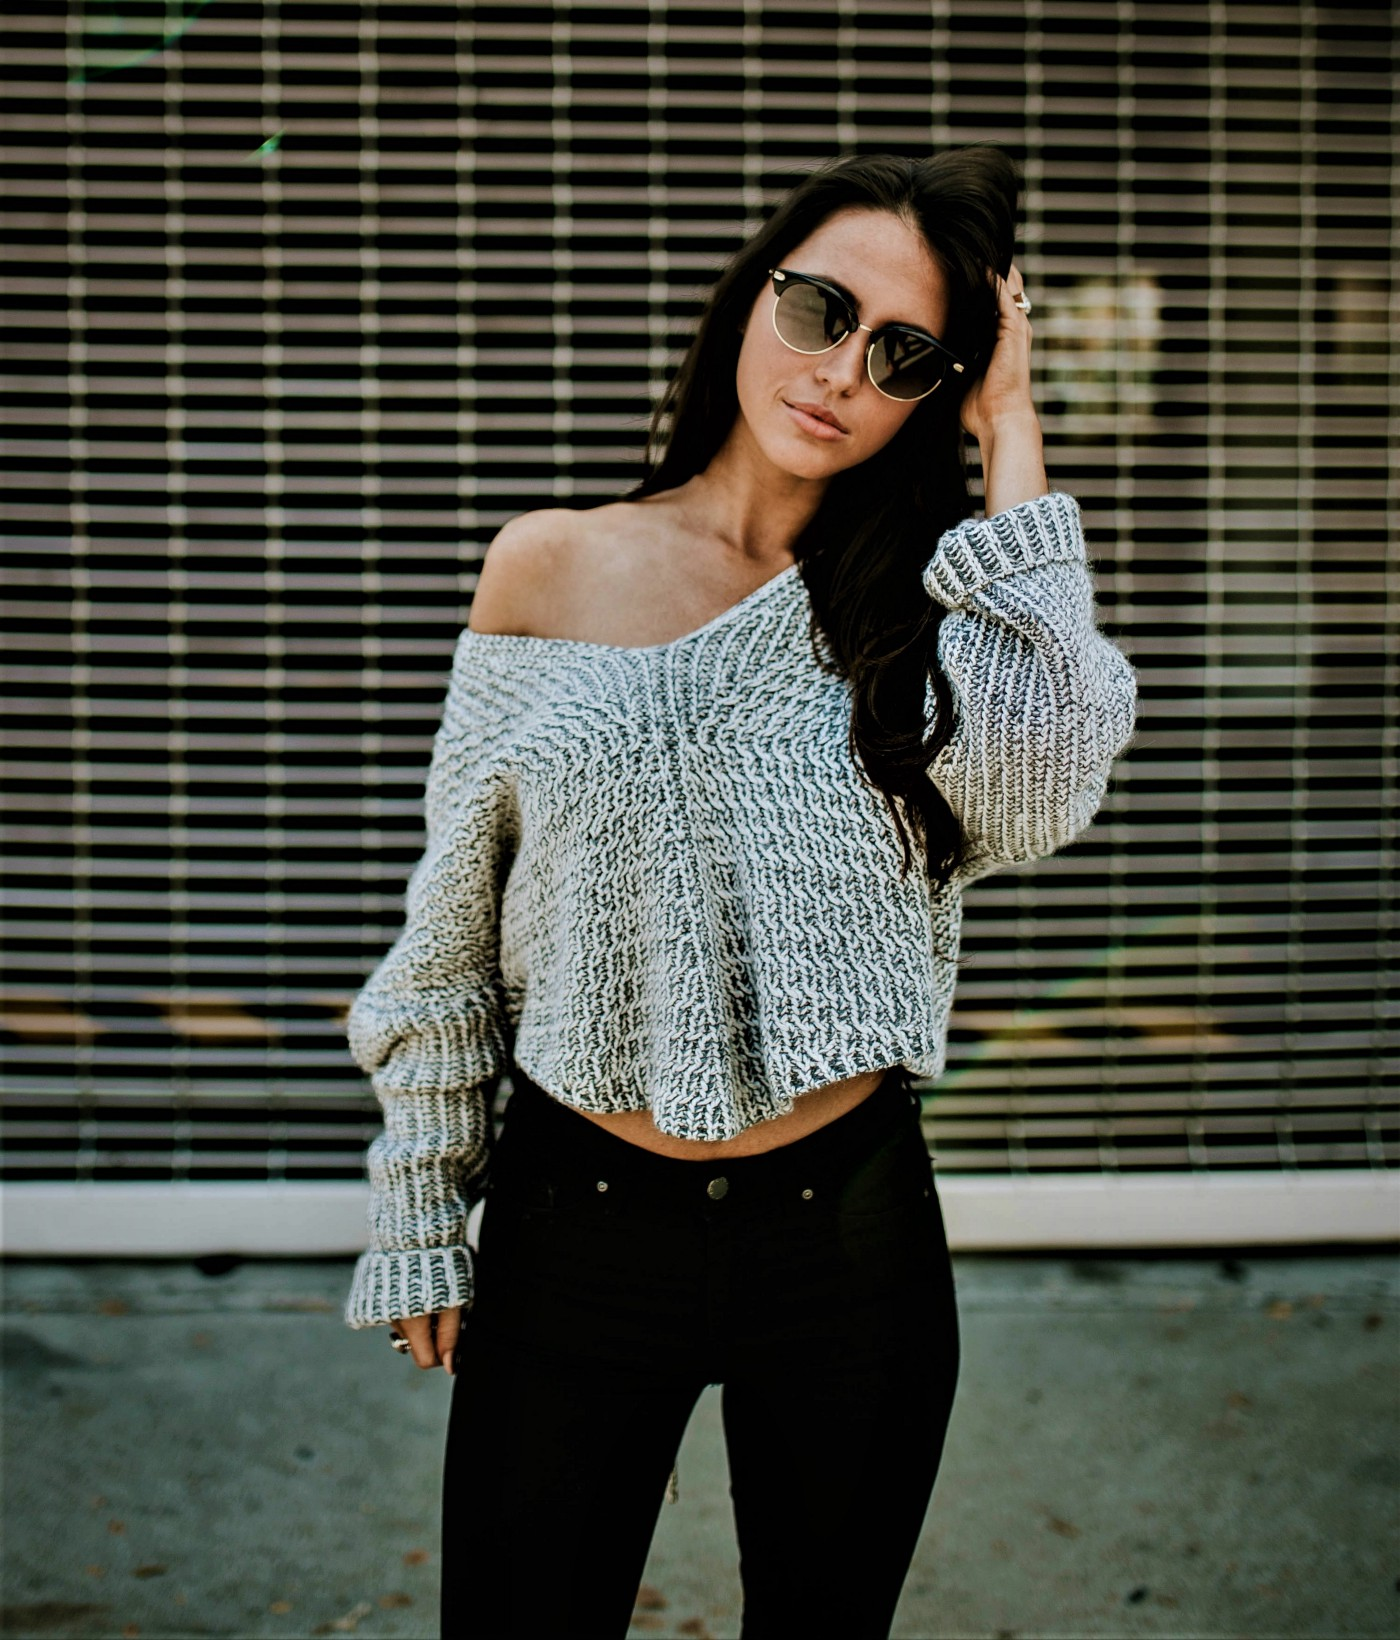 girl with long dark hair wearing sunglasses and long-sleeve off-the-shoulder tan sweater